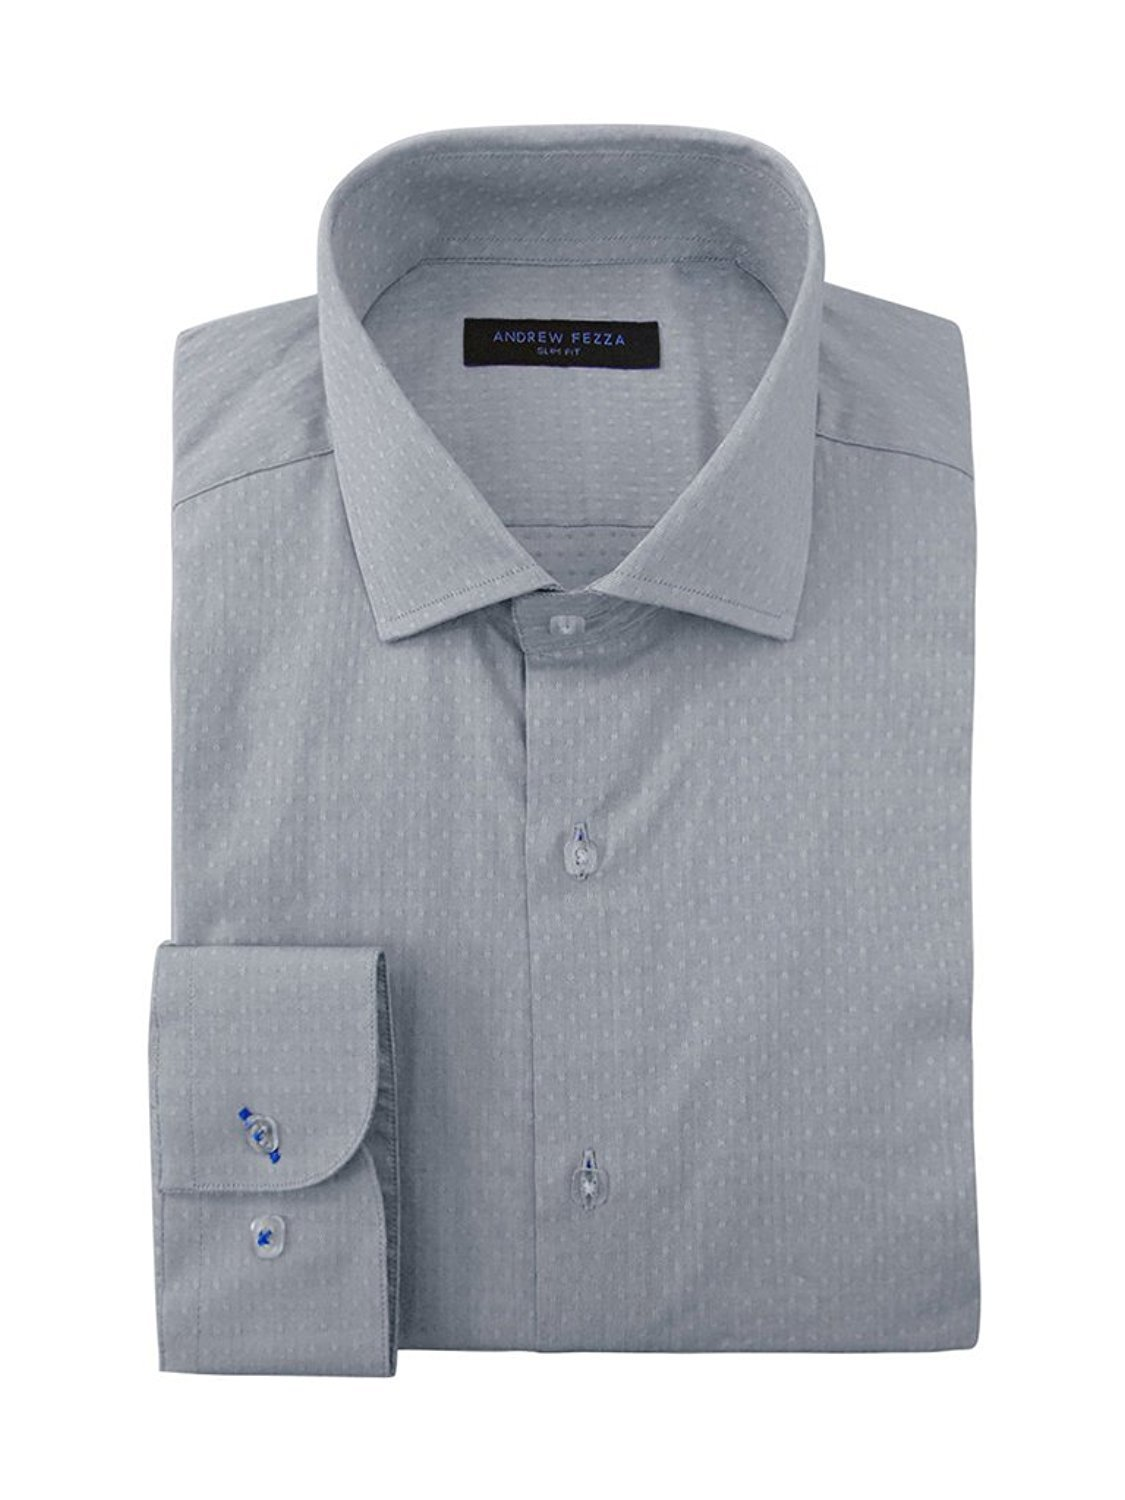 Andrew Fezza Men/'s Slim Fit Dress Shirt Available in Many Paterns and Colors